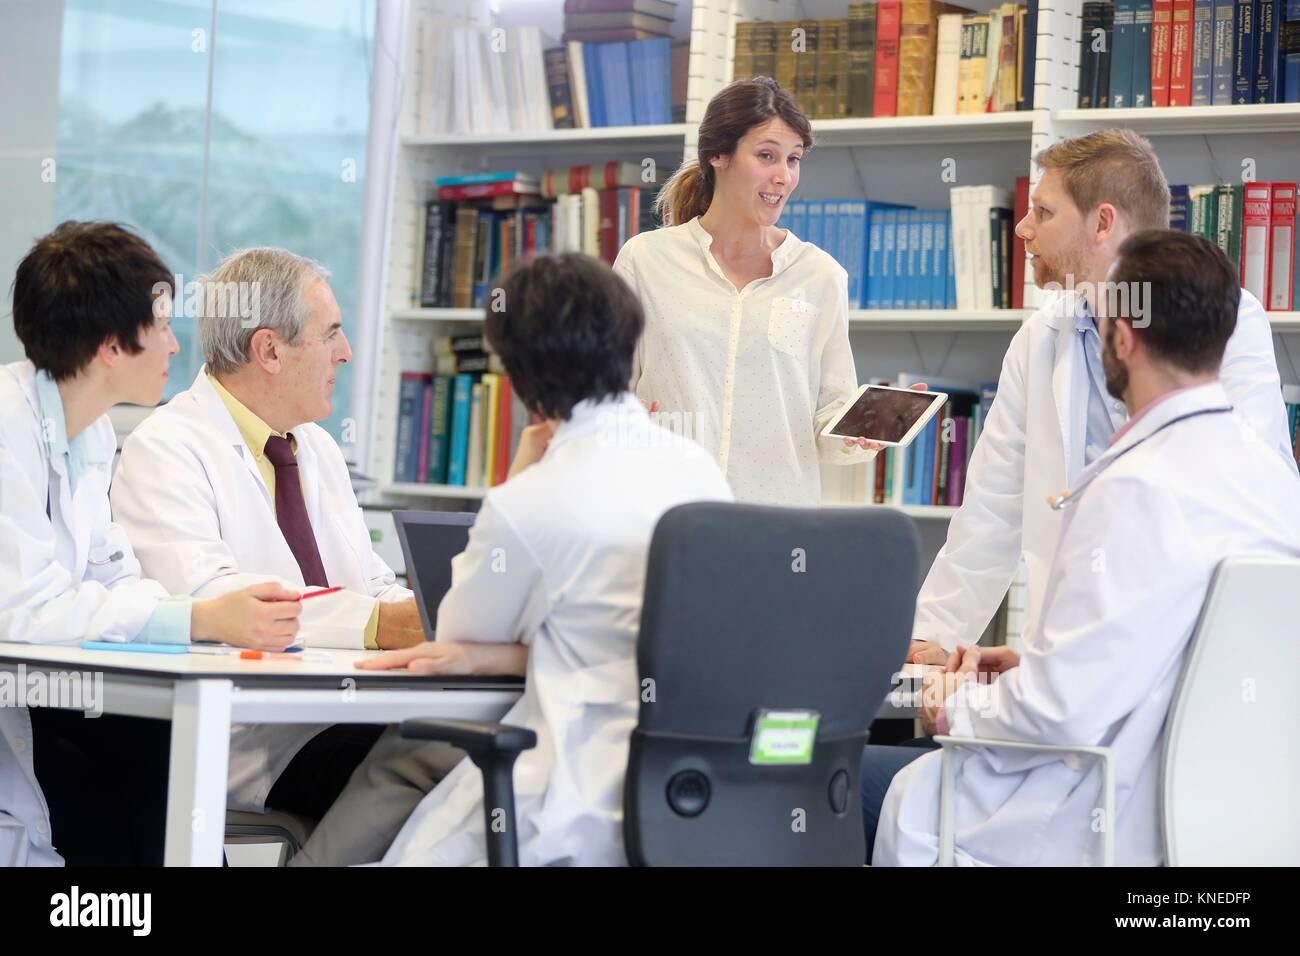 Saleswoman at doctors´ meeting, clinical session, Hospital, Donostia, San Sebastian, Gipuzkoa, Basque Country, - Stock Image